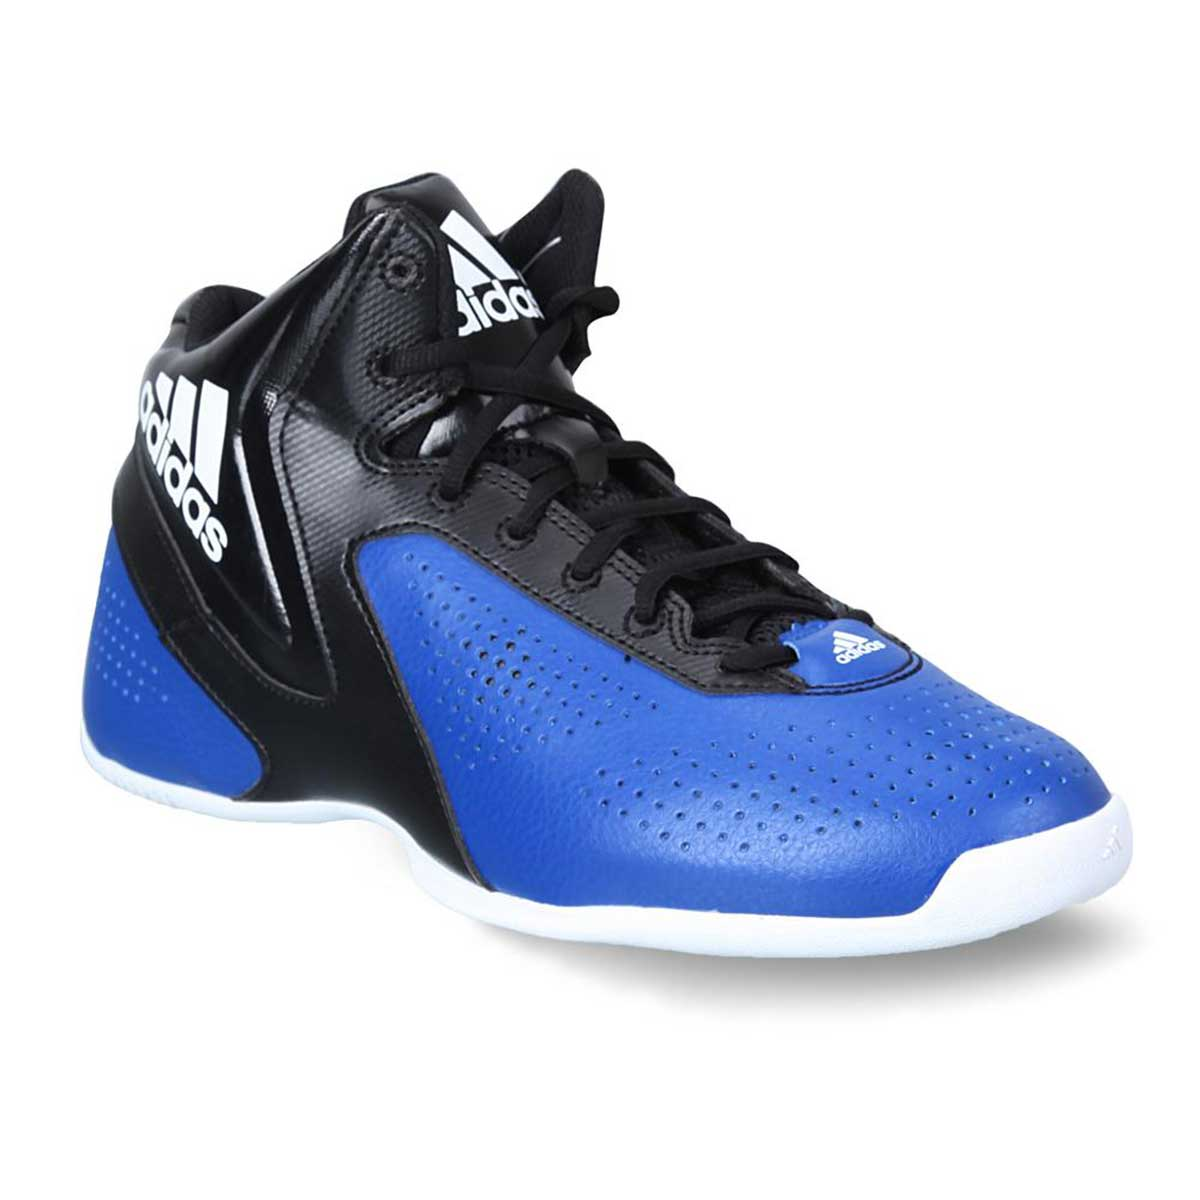 2bb34972e472 Buy Adidas Next Level Speed Basketball Shoes Online in India